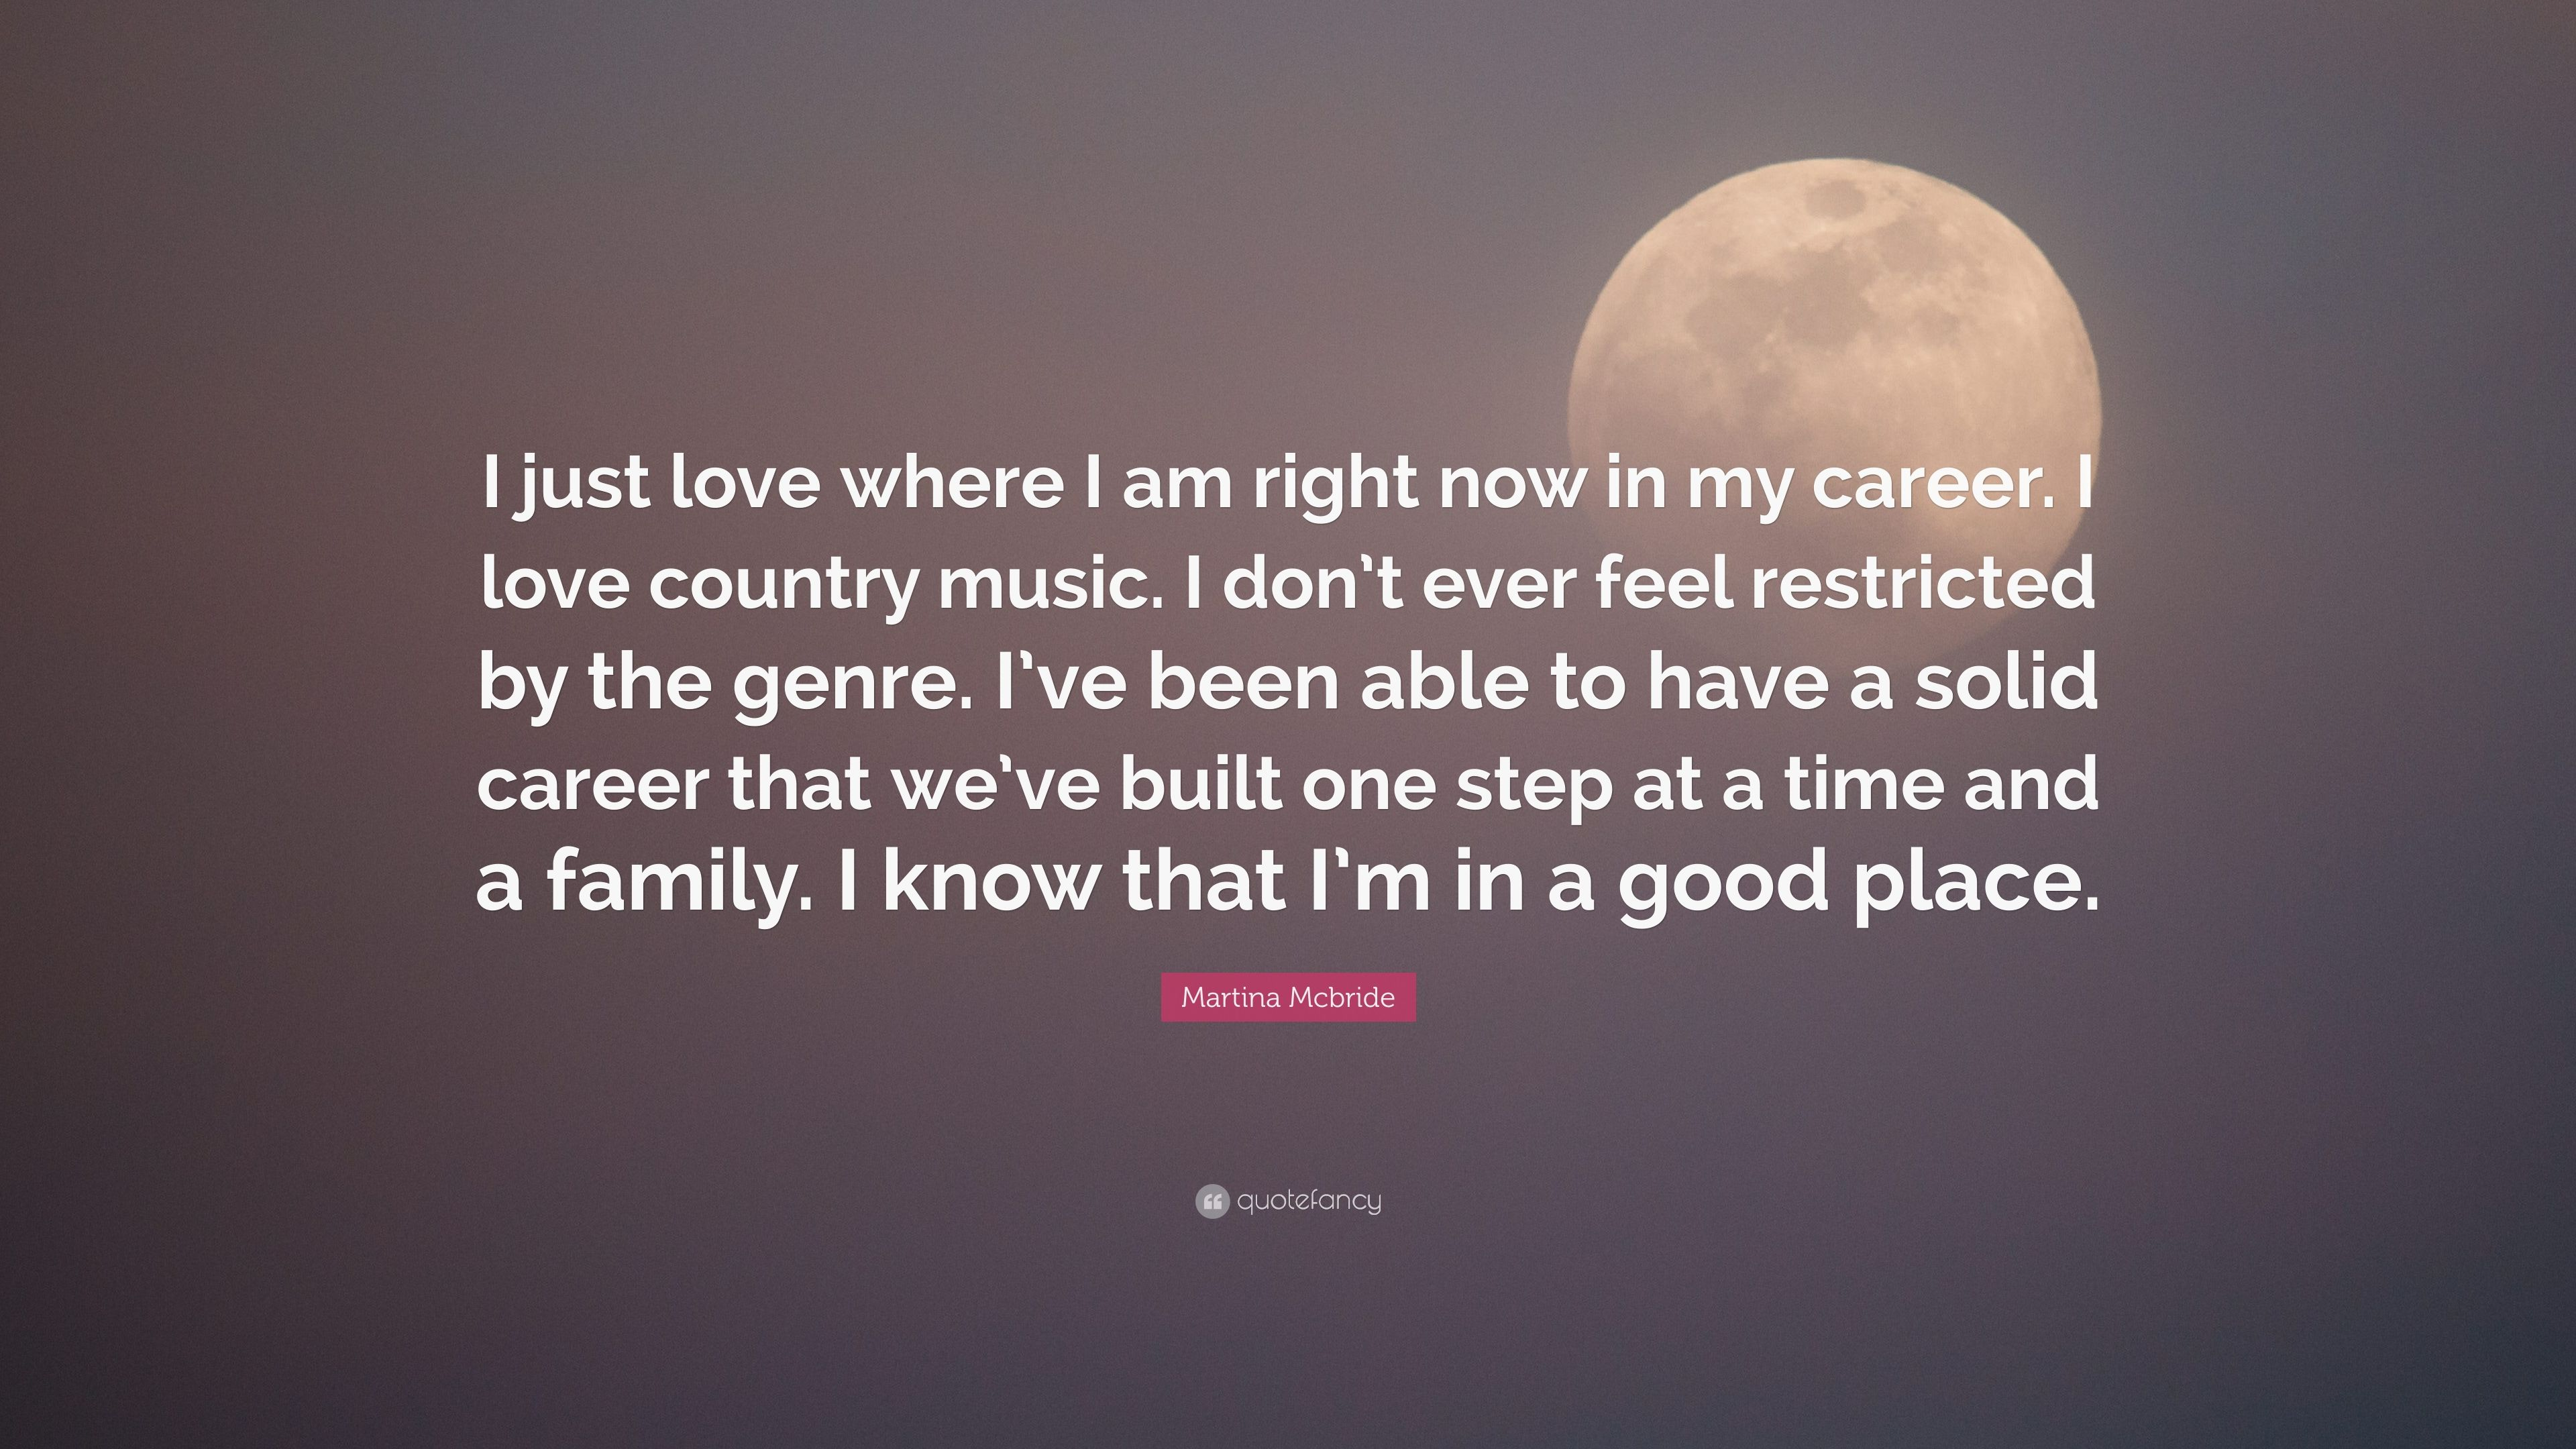 Martina Mcbride Quote I Just Love Where I Am Right Now In My Career